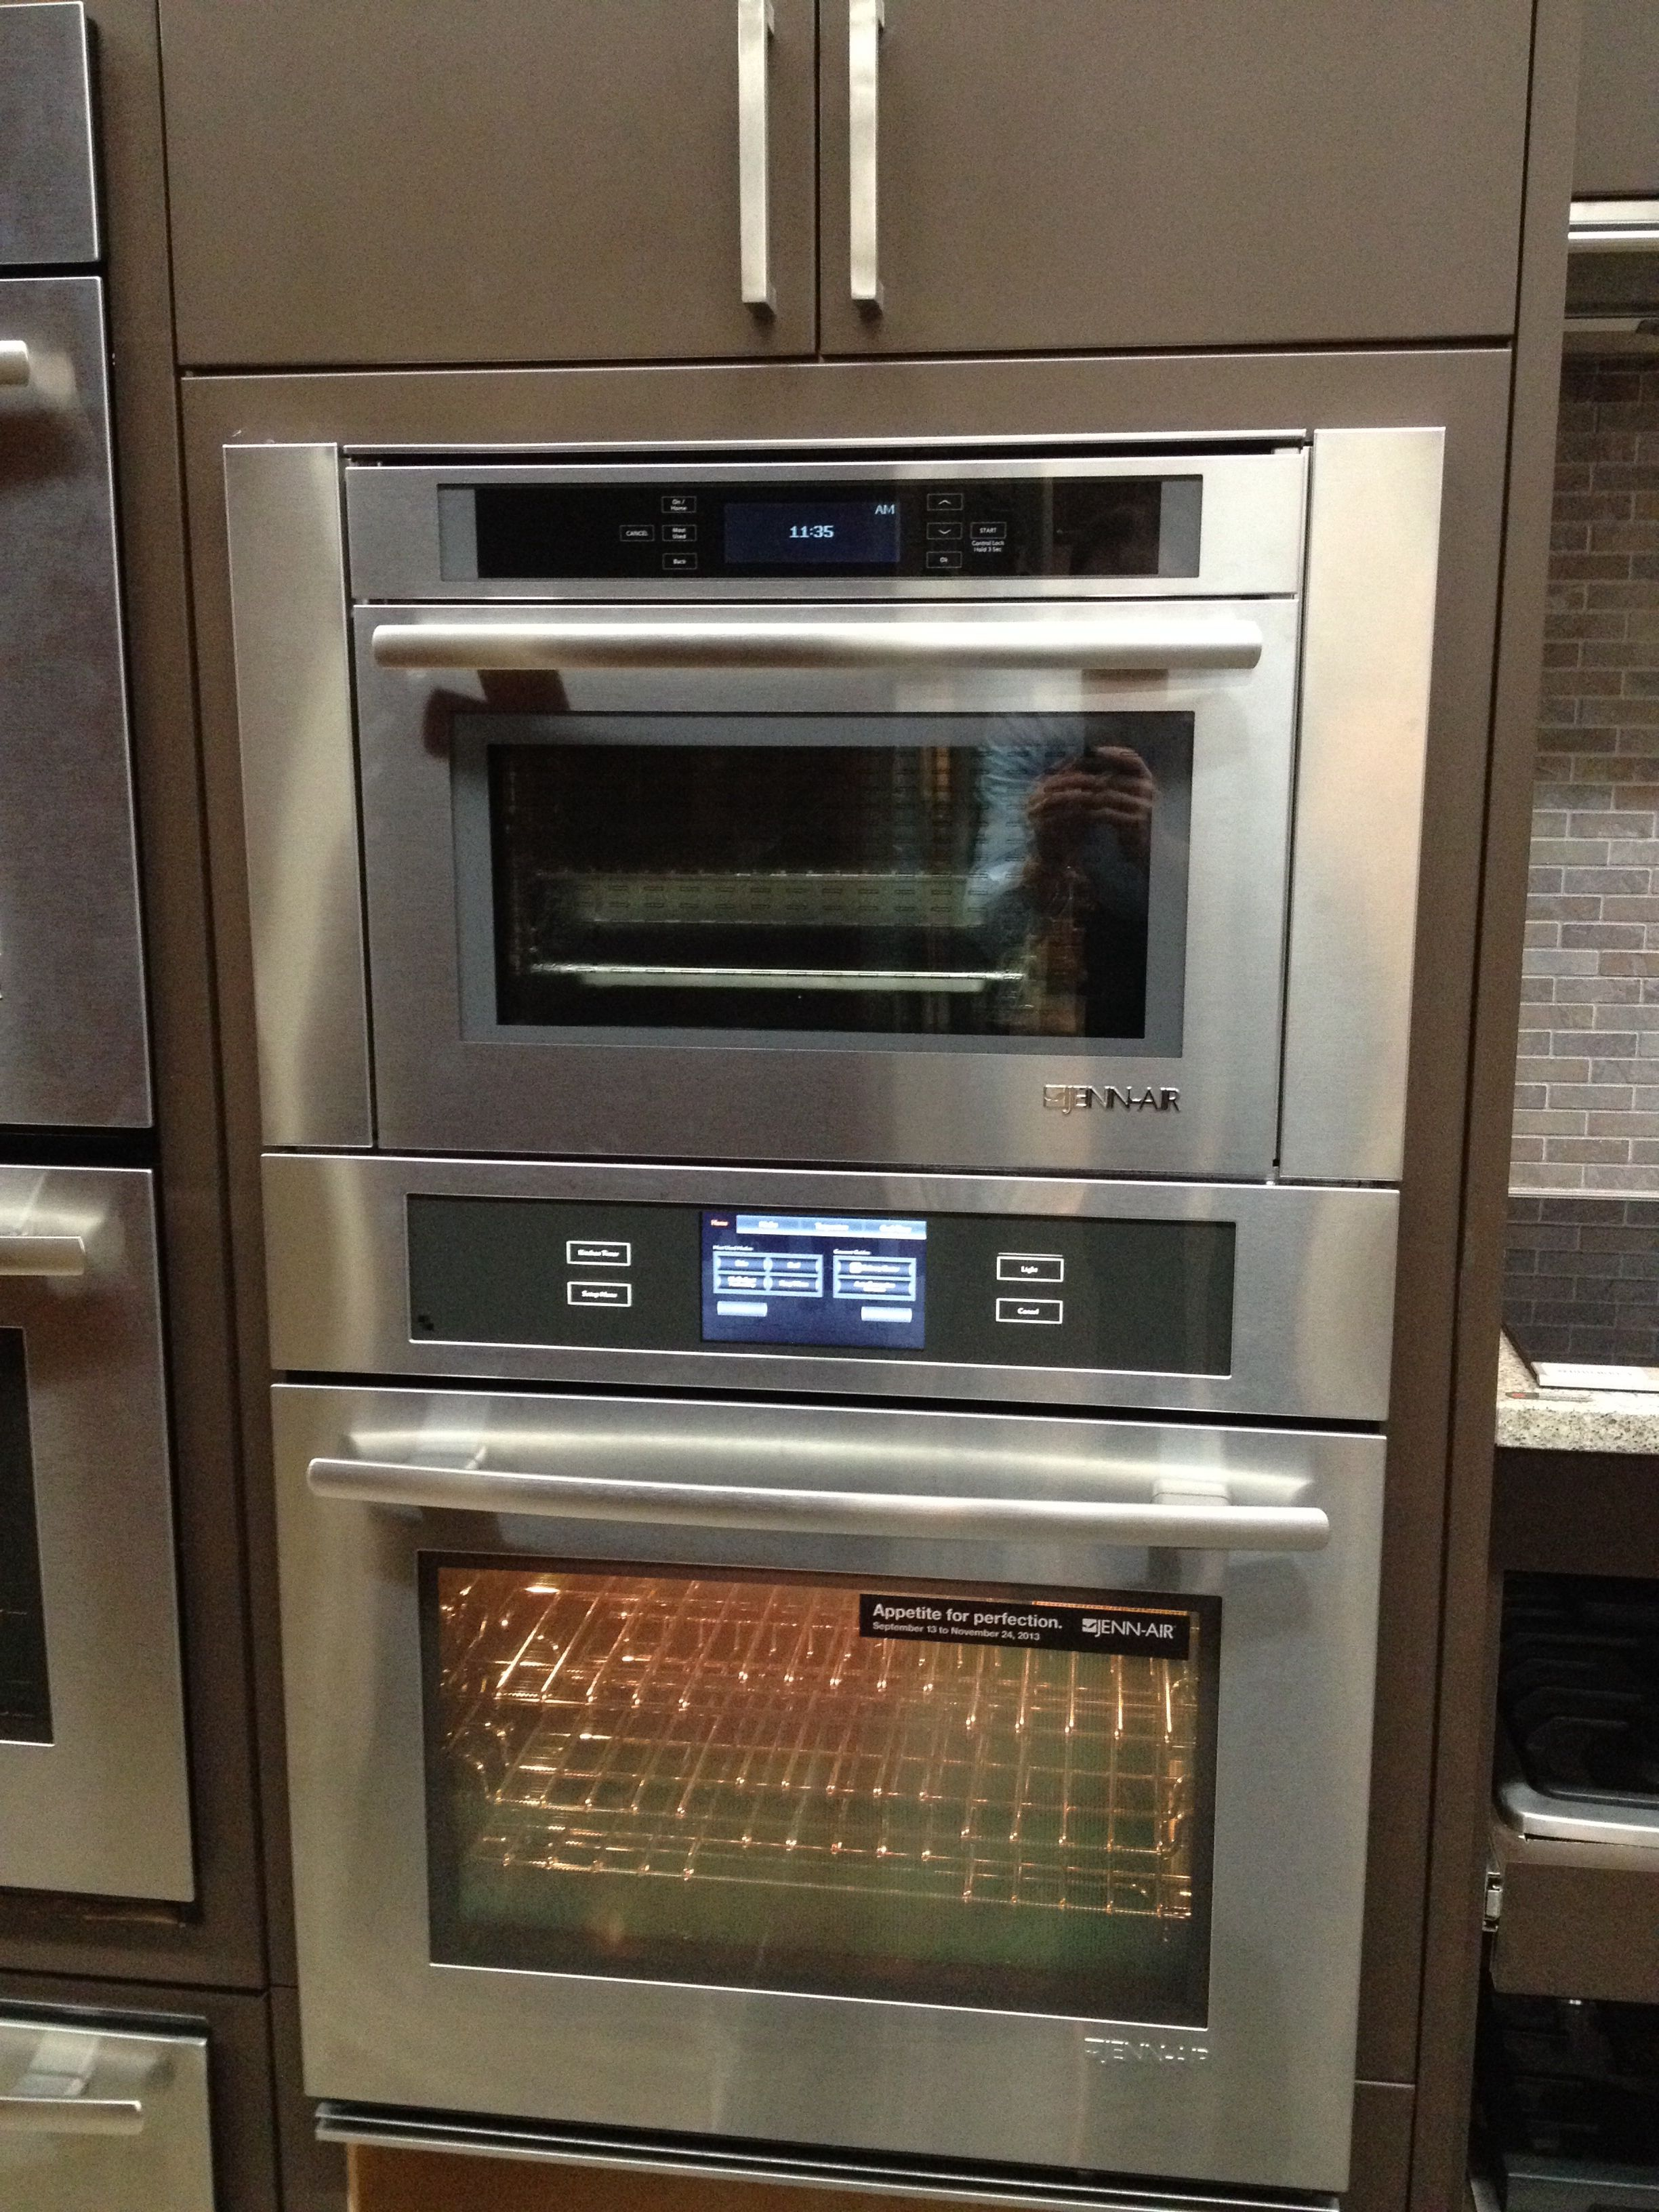 Jenn Air Steam Convection Oven With Matching 30 Jjw3430 Below The Complete Culinary Center